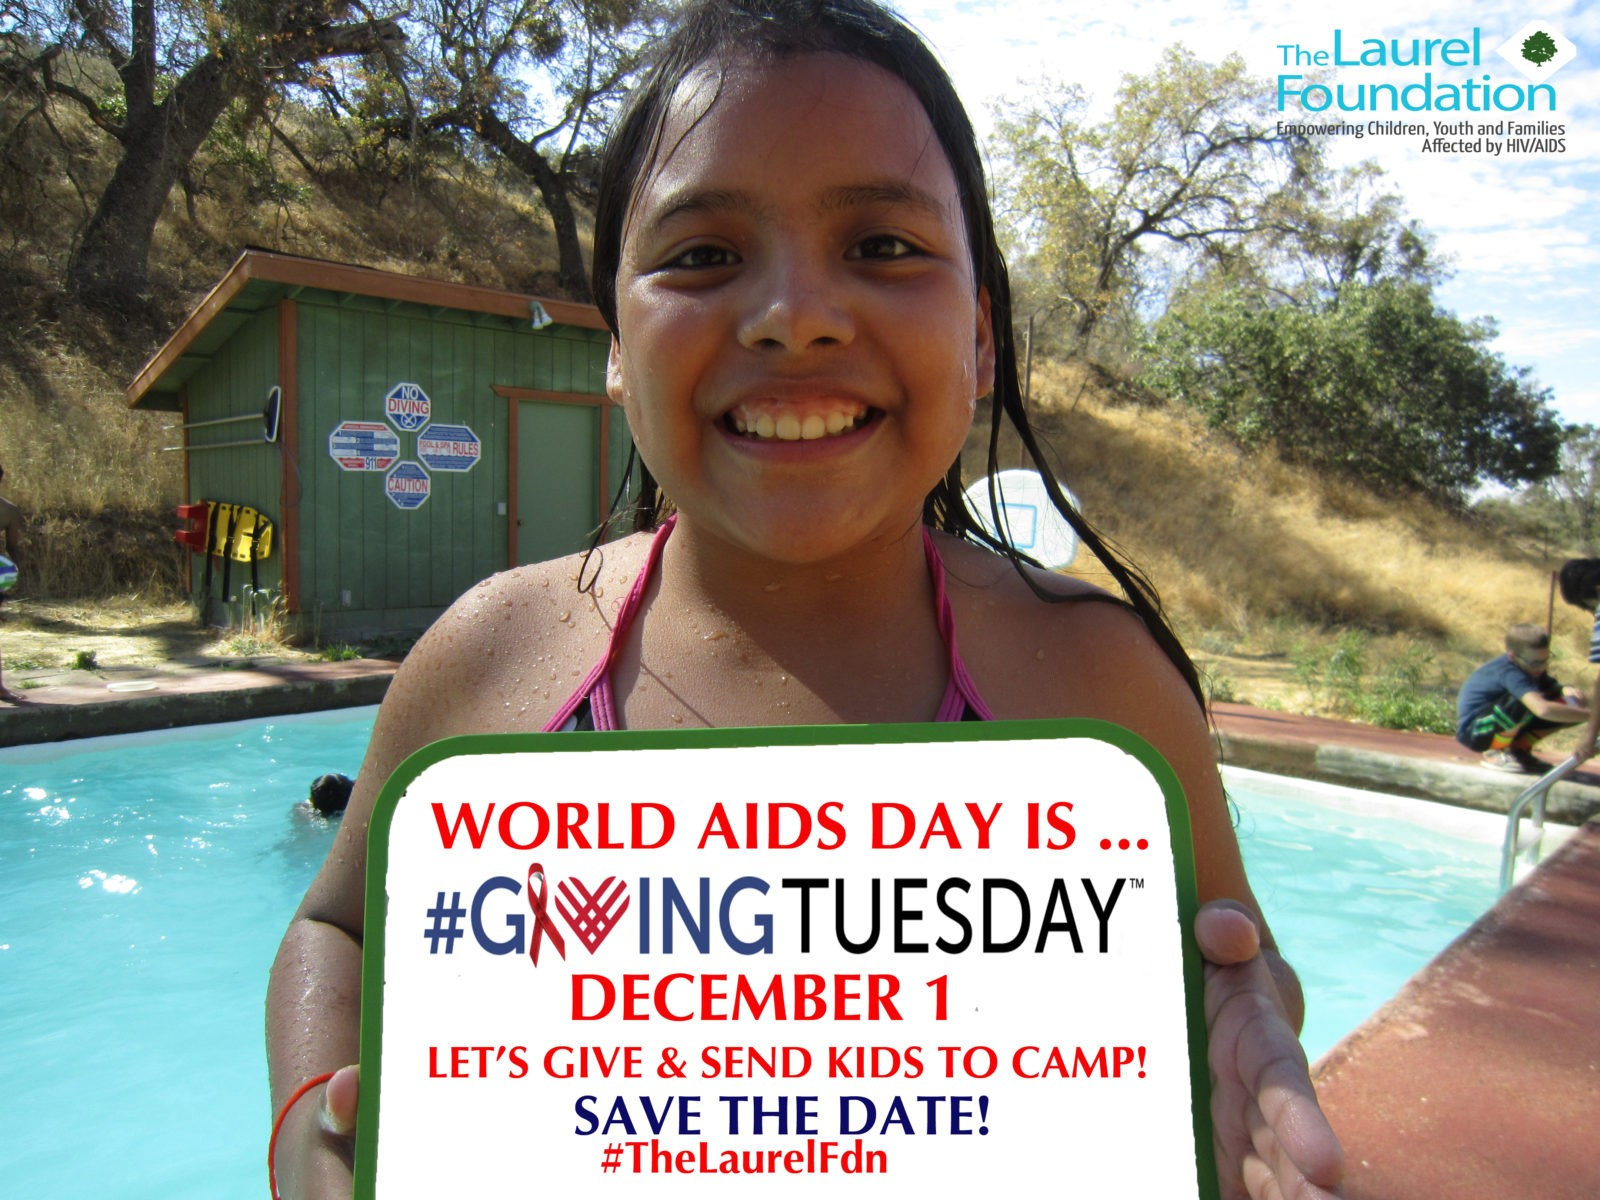 World AIDS Day is Giving Tuesday!